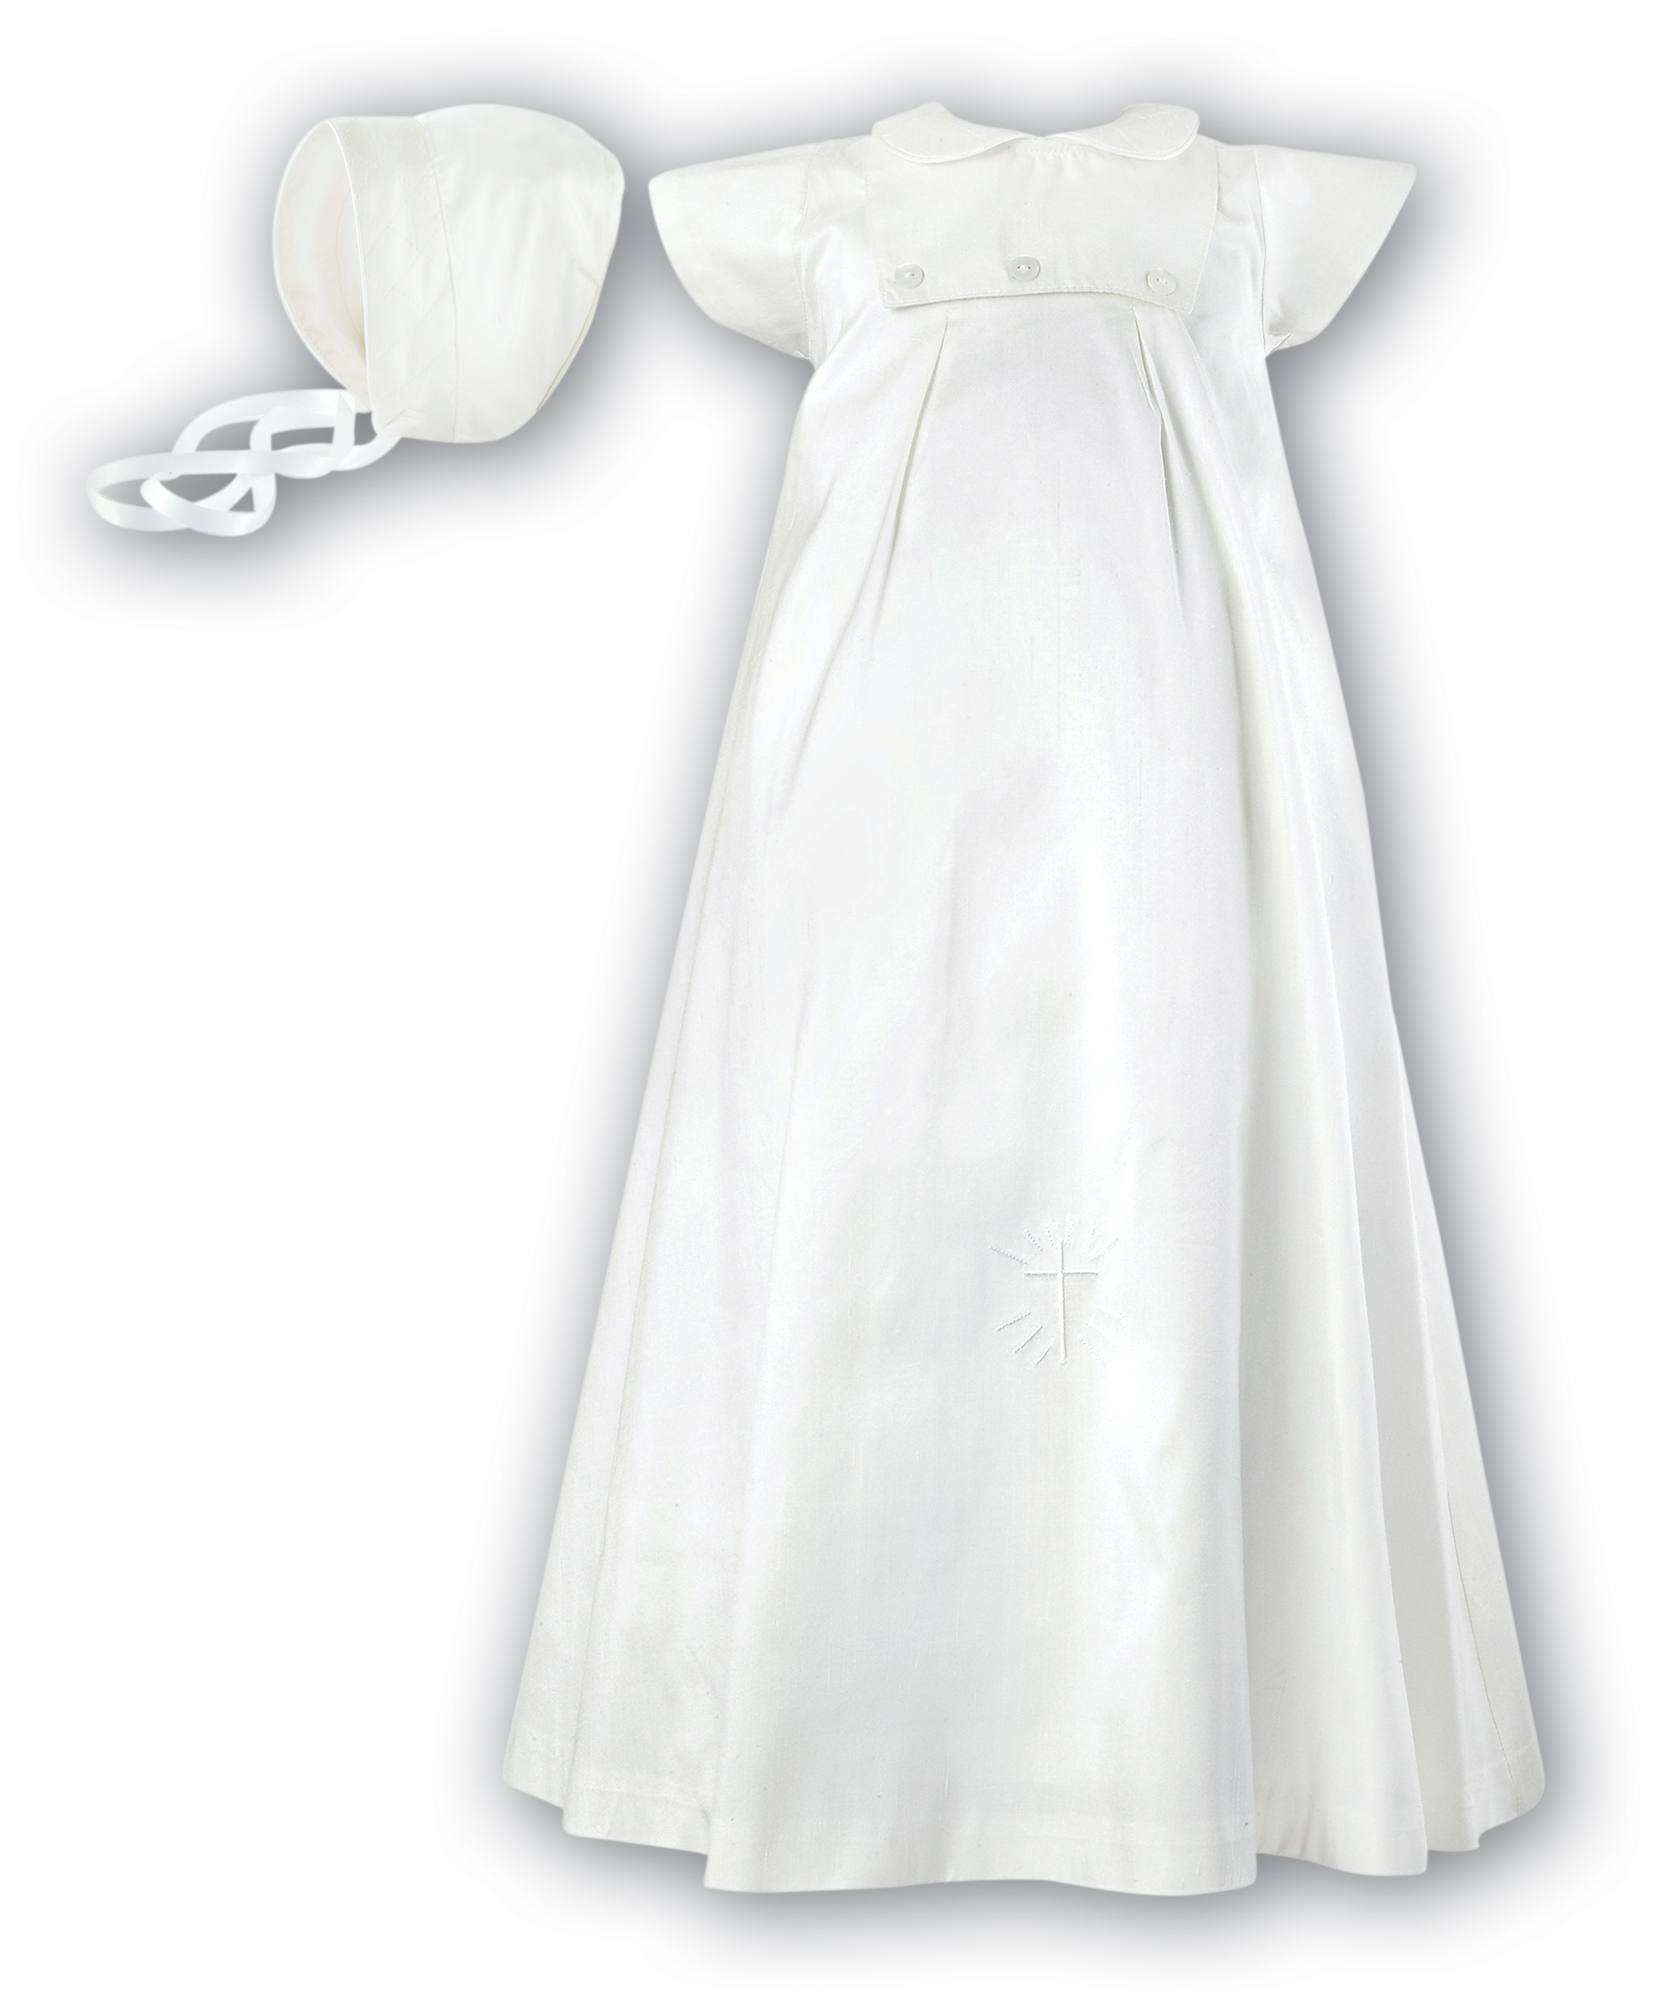 Sarah Louise Christening Gown for Boy Heirloom Baptism Outfits